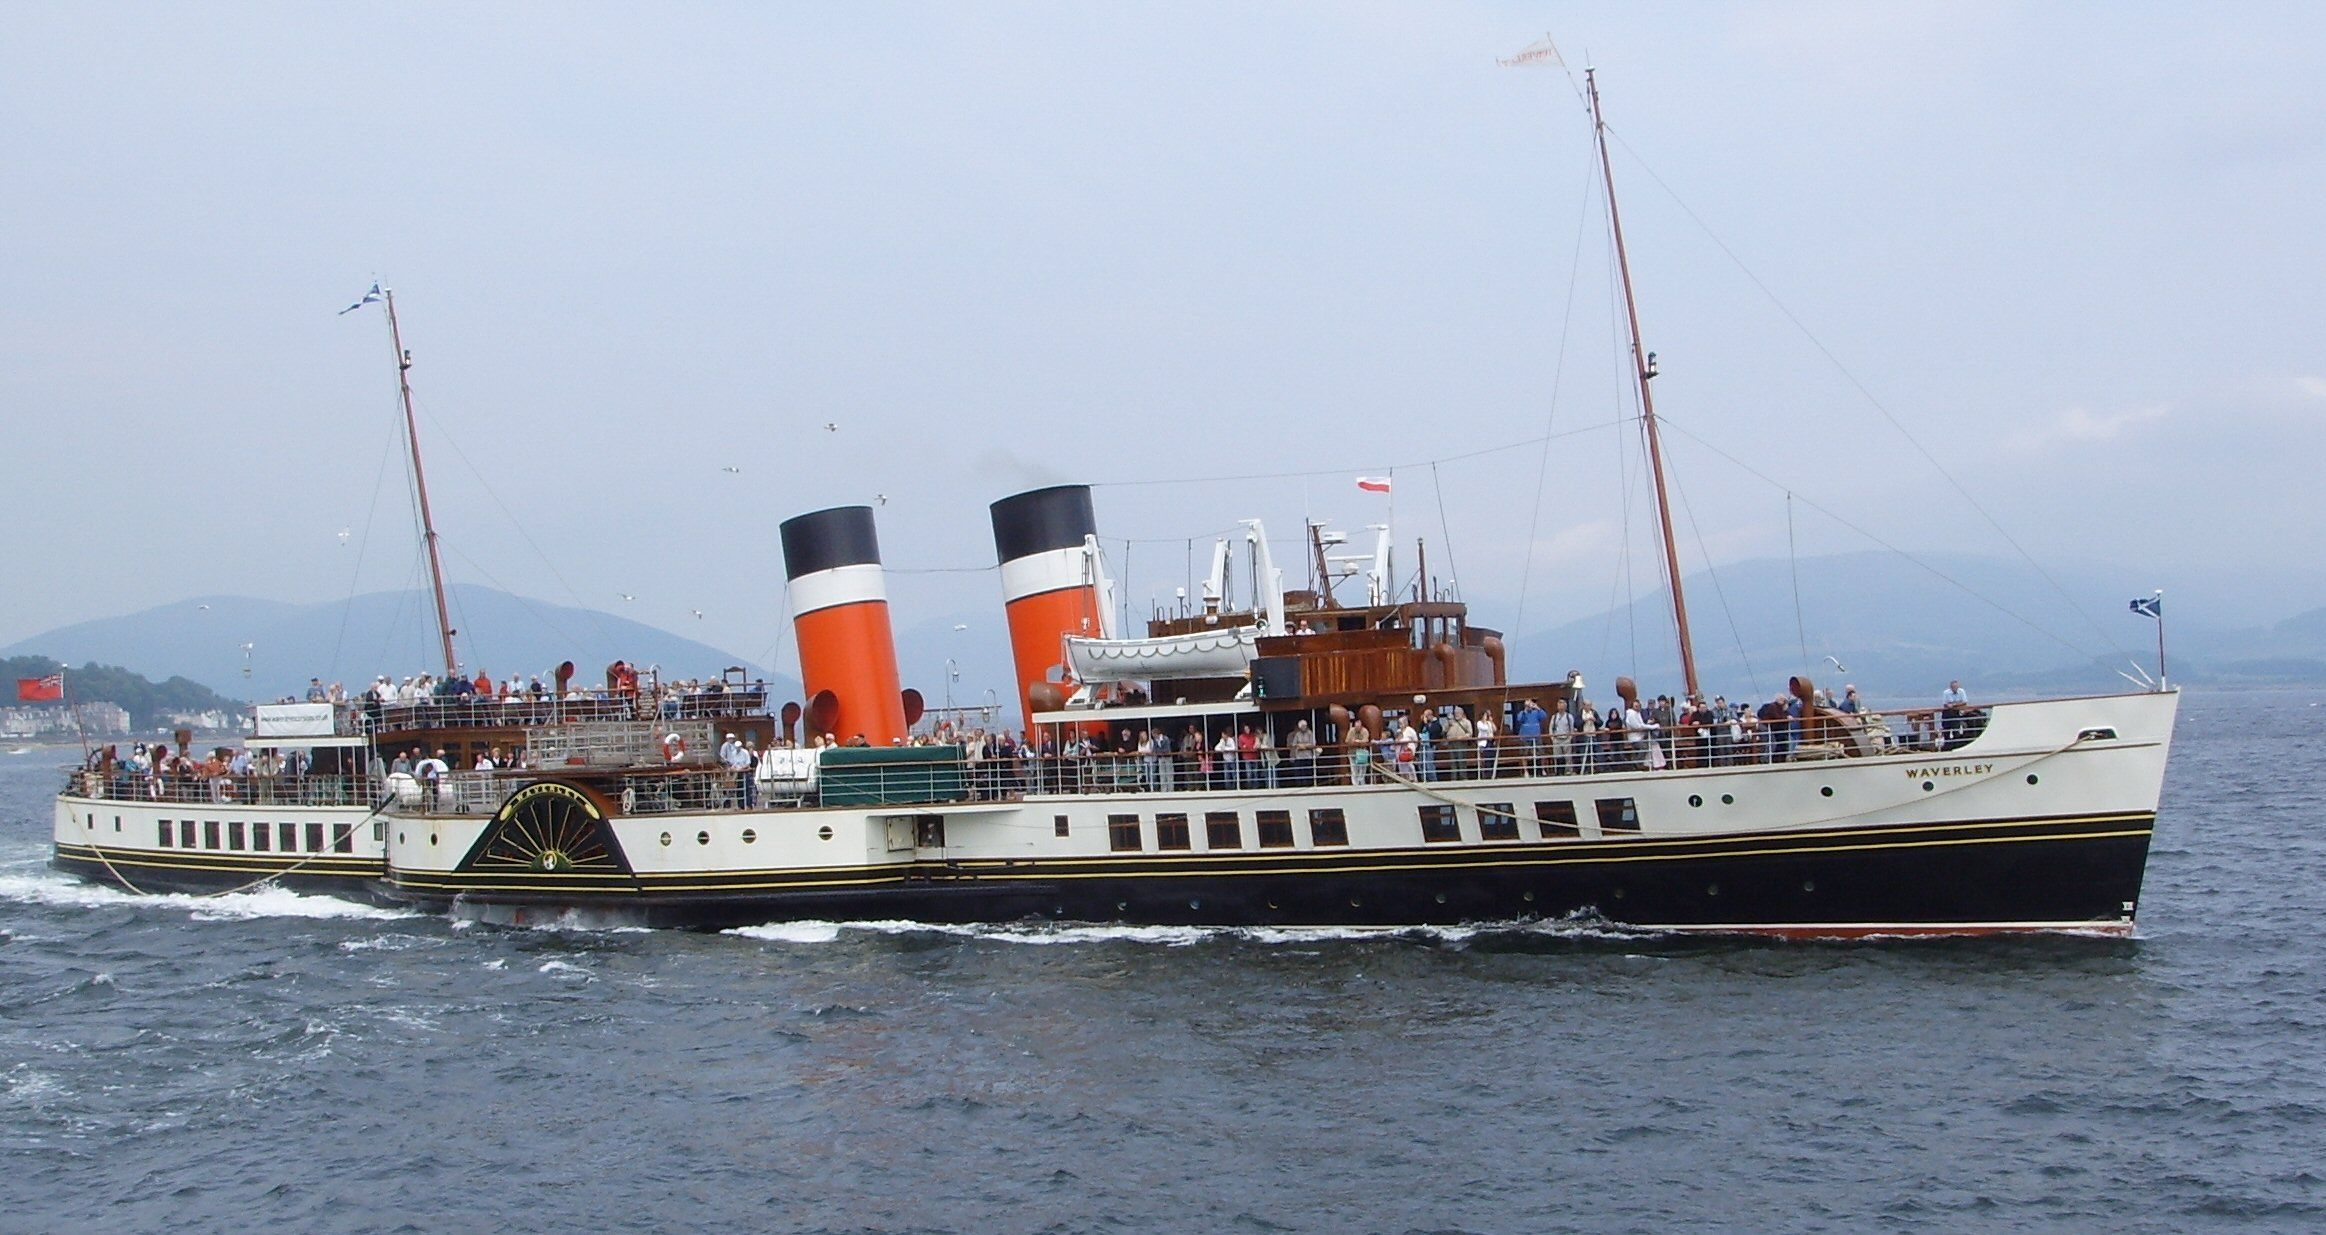 Paddle Steamer The Waverley On The River Clyde Glasgow Scenic 2nd City